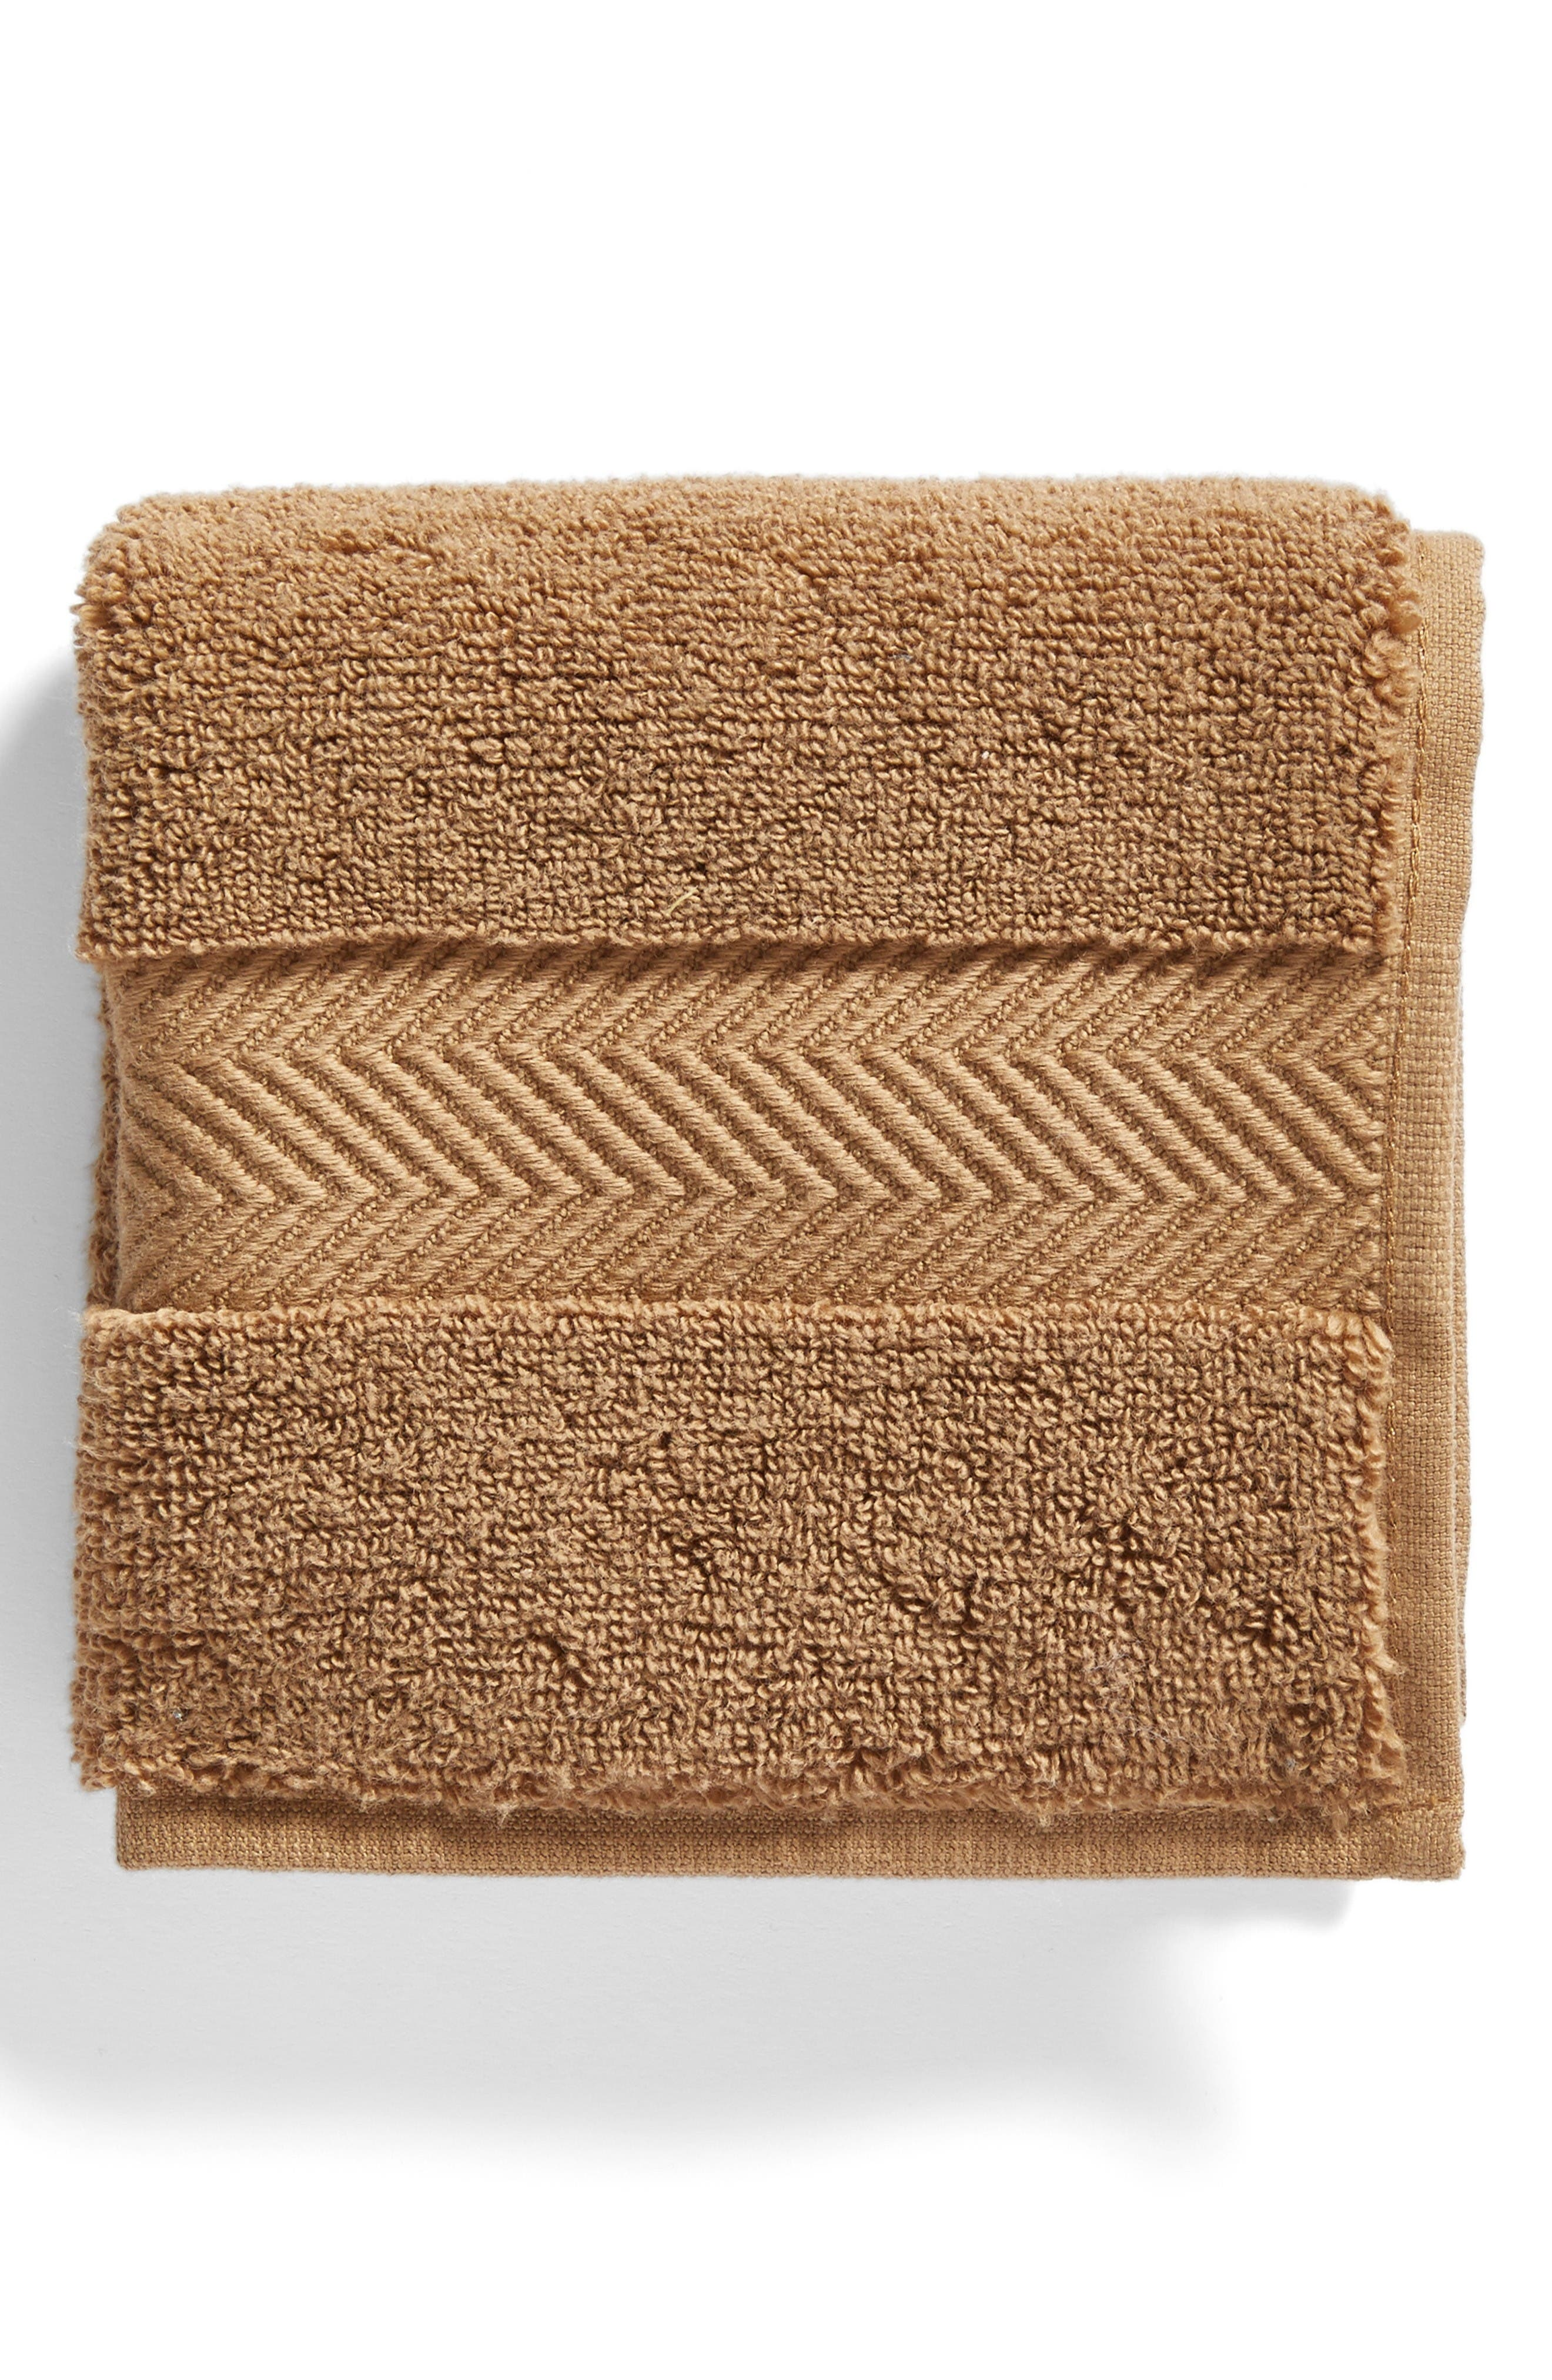 Nordstrom at Home Hydrocotton Washcloth (2 for $17)